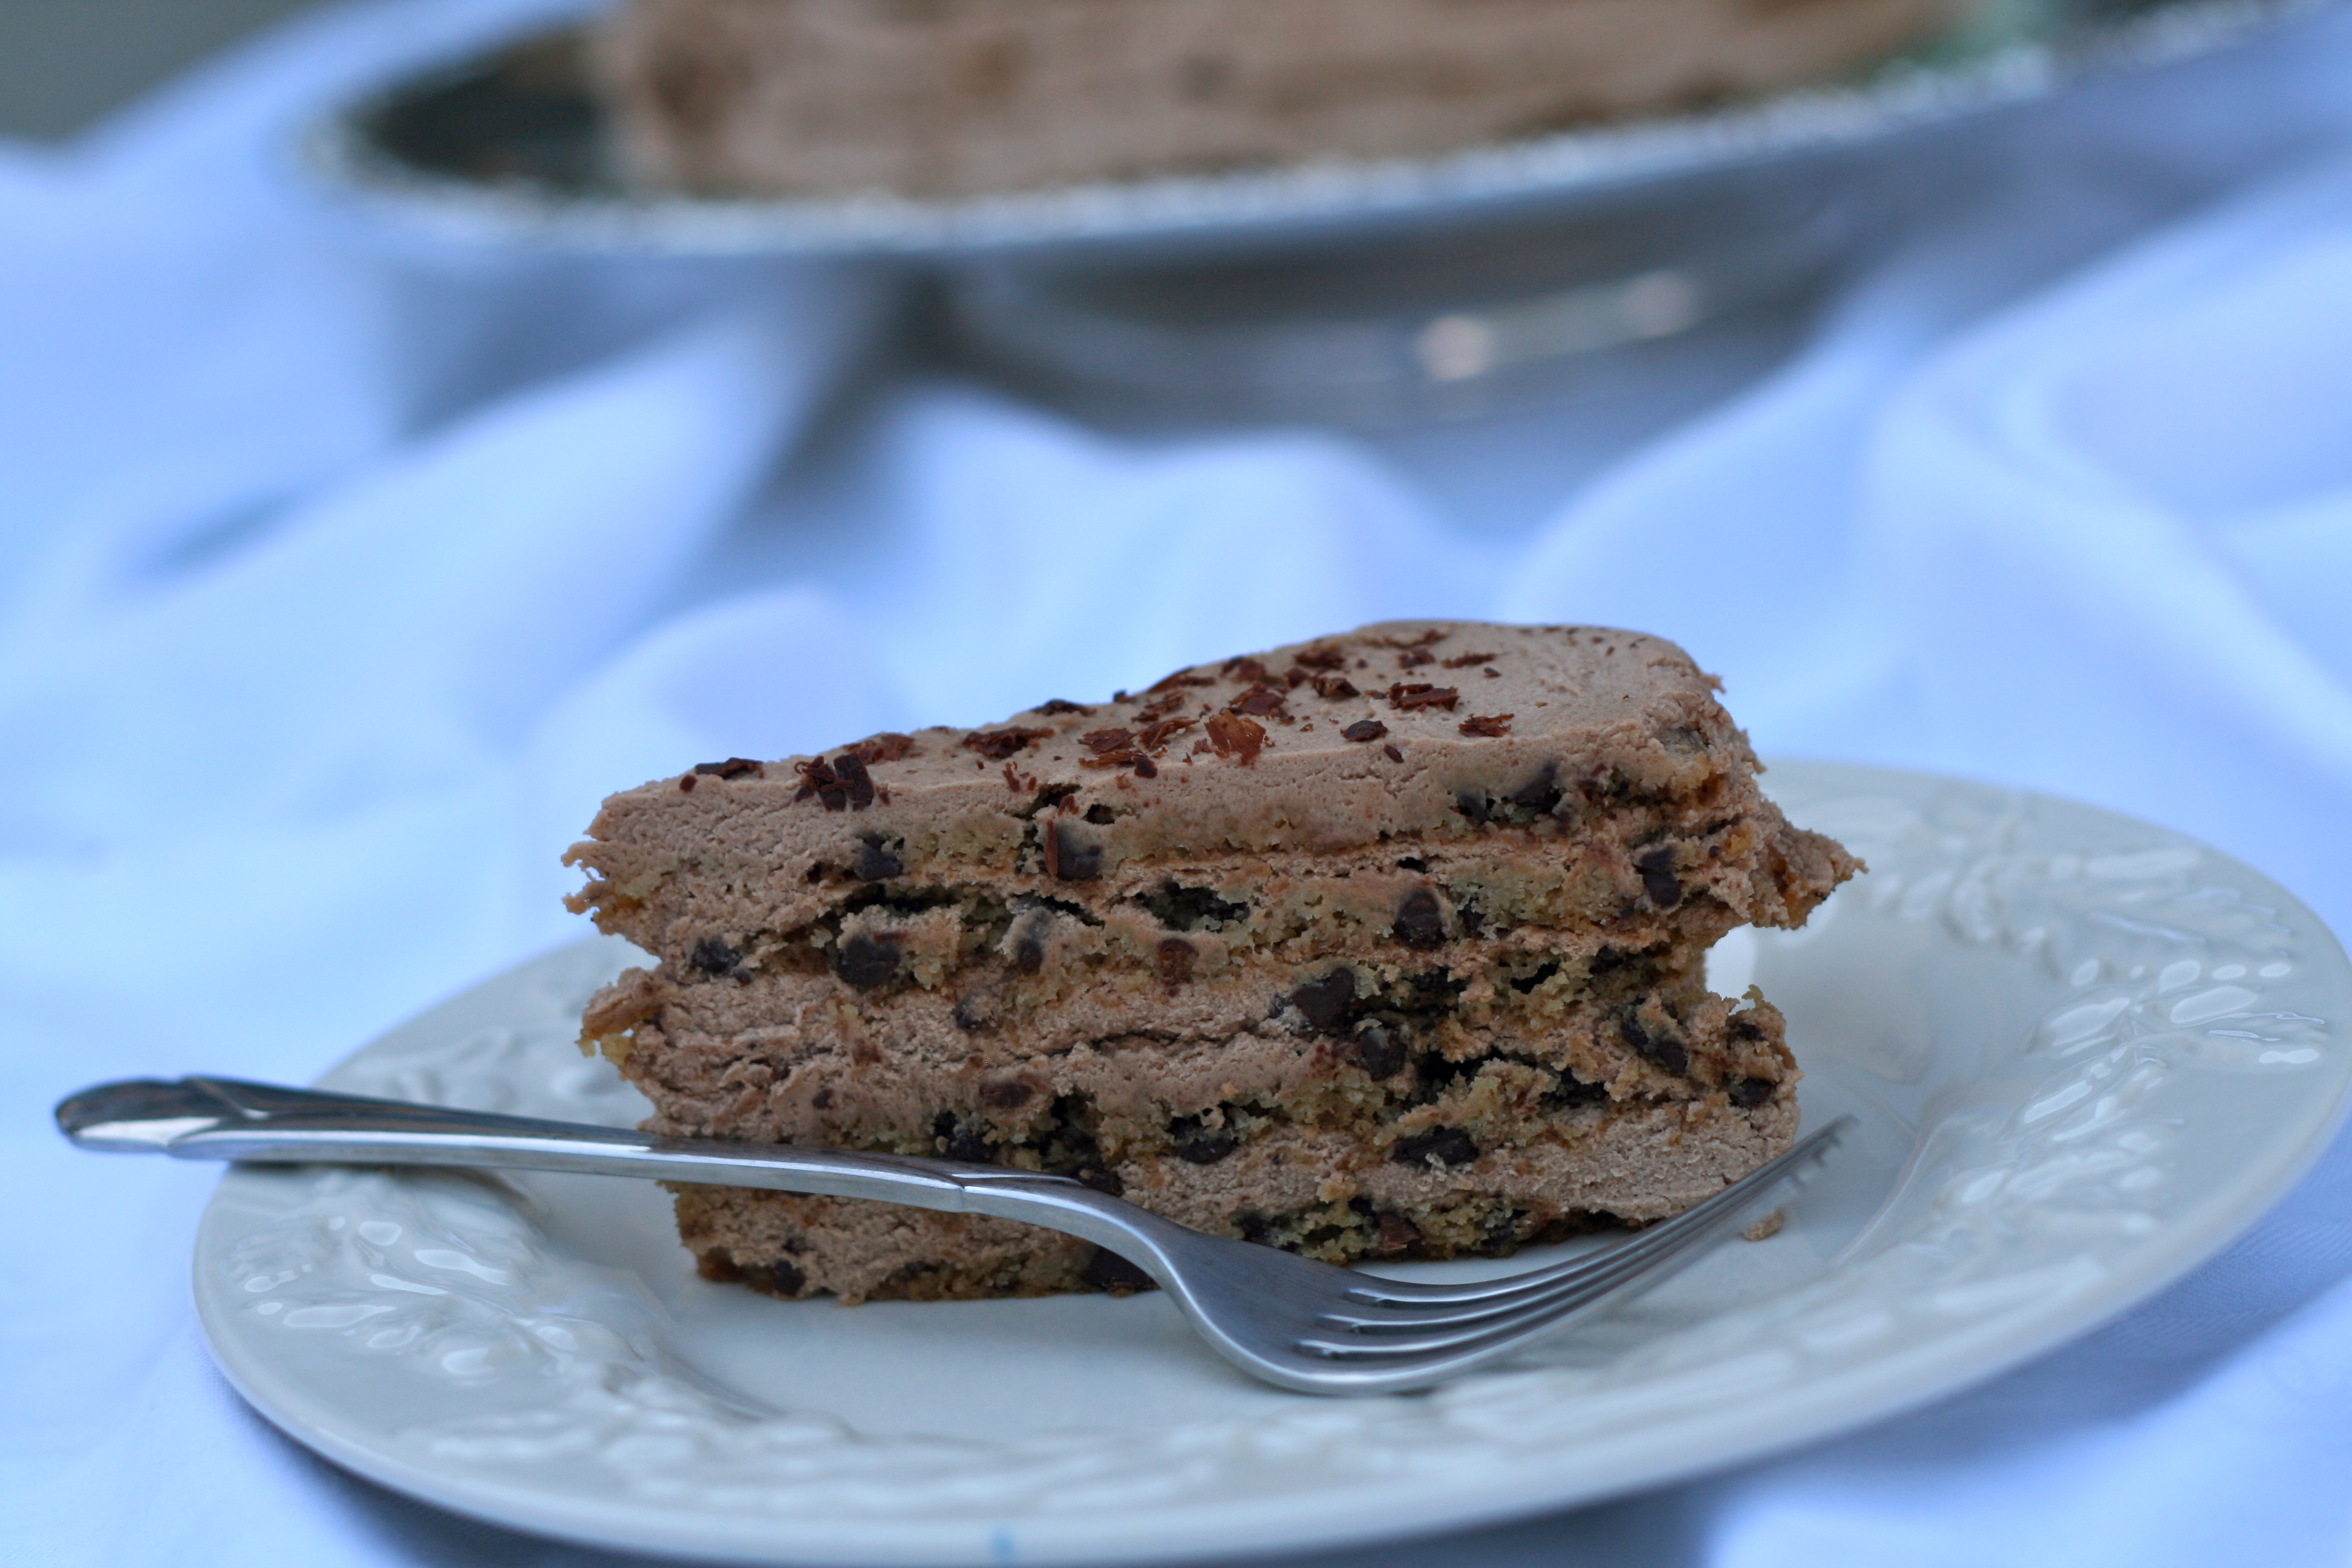 Mocha Meringue Cake Chocolate And Coffee With Cream Filling And